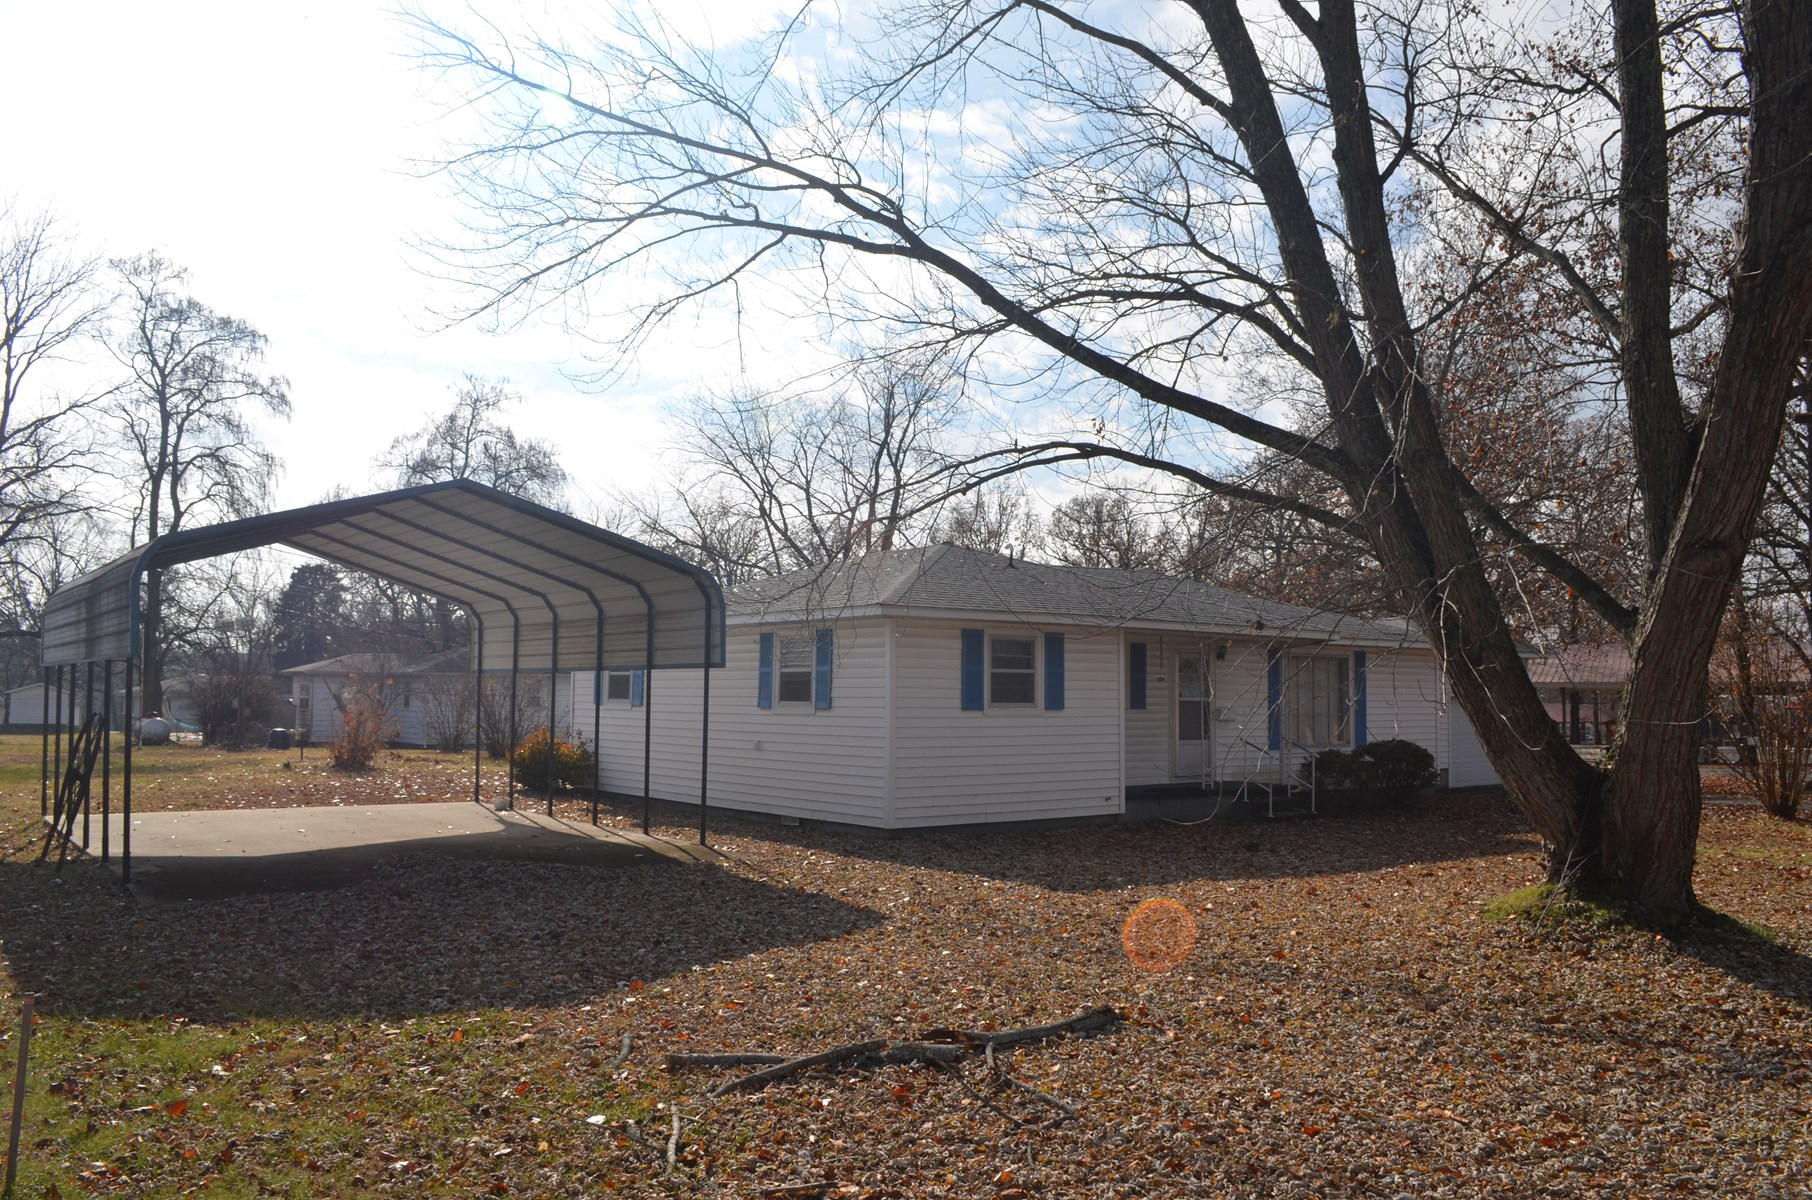 House in Town for Sale in South Central Missouri